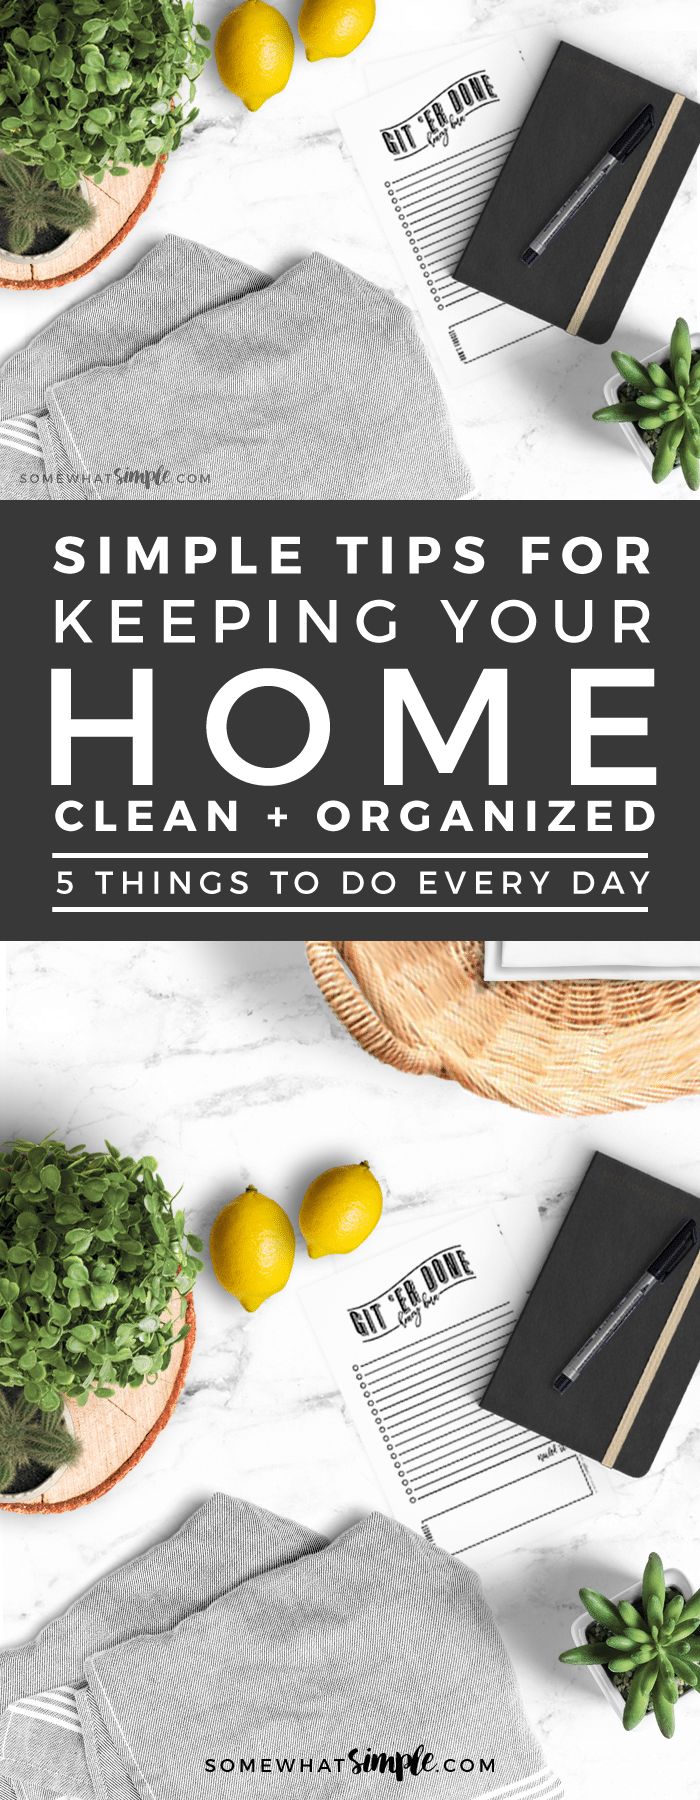 How to keep your house clean simply by doing 5 EASY tasks each day! via @somewhatsimple